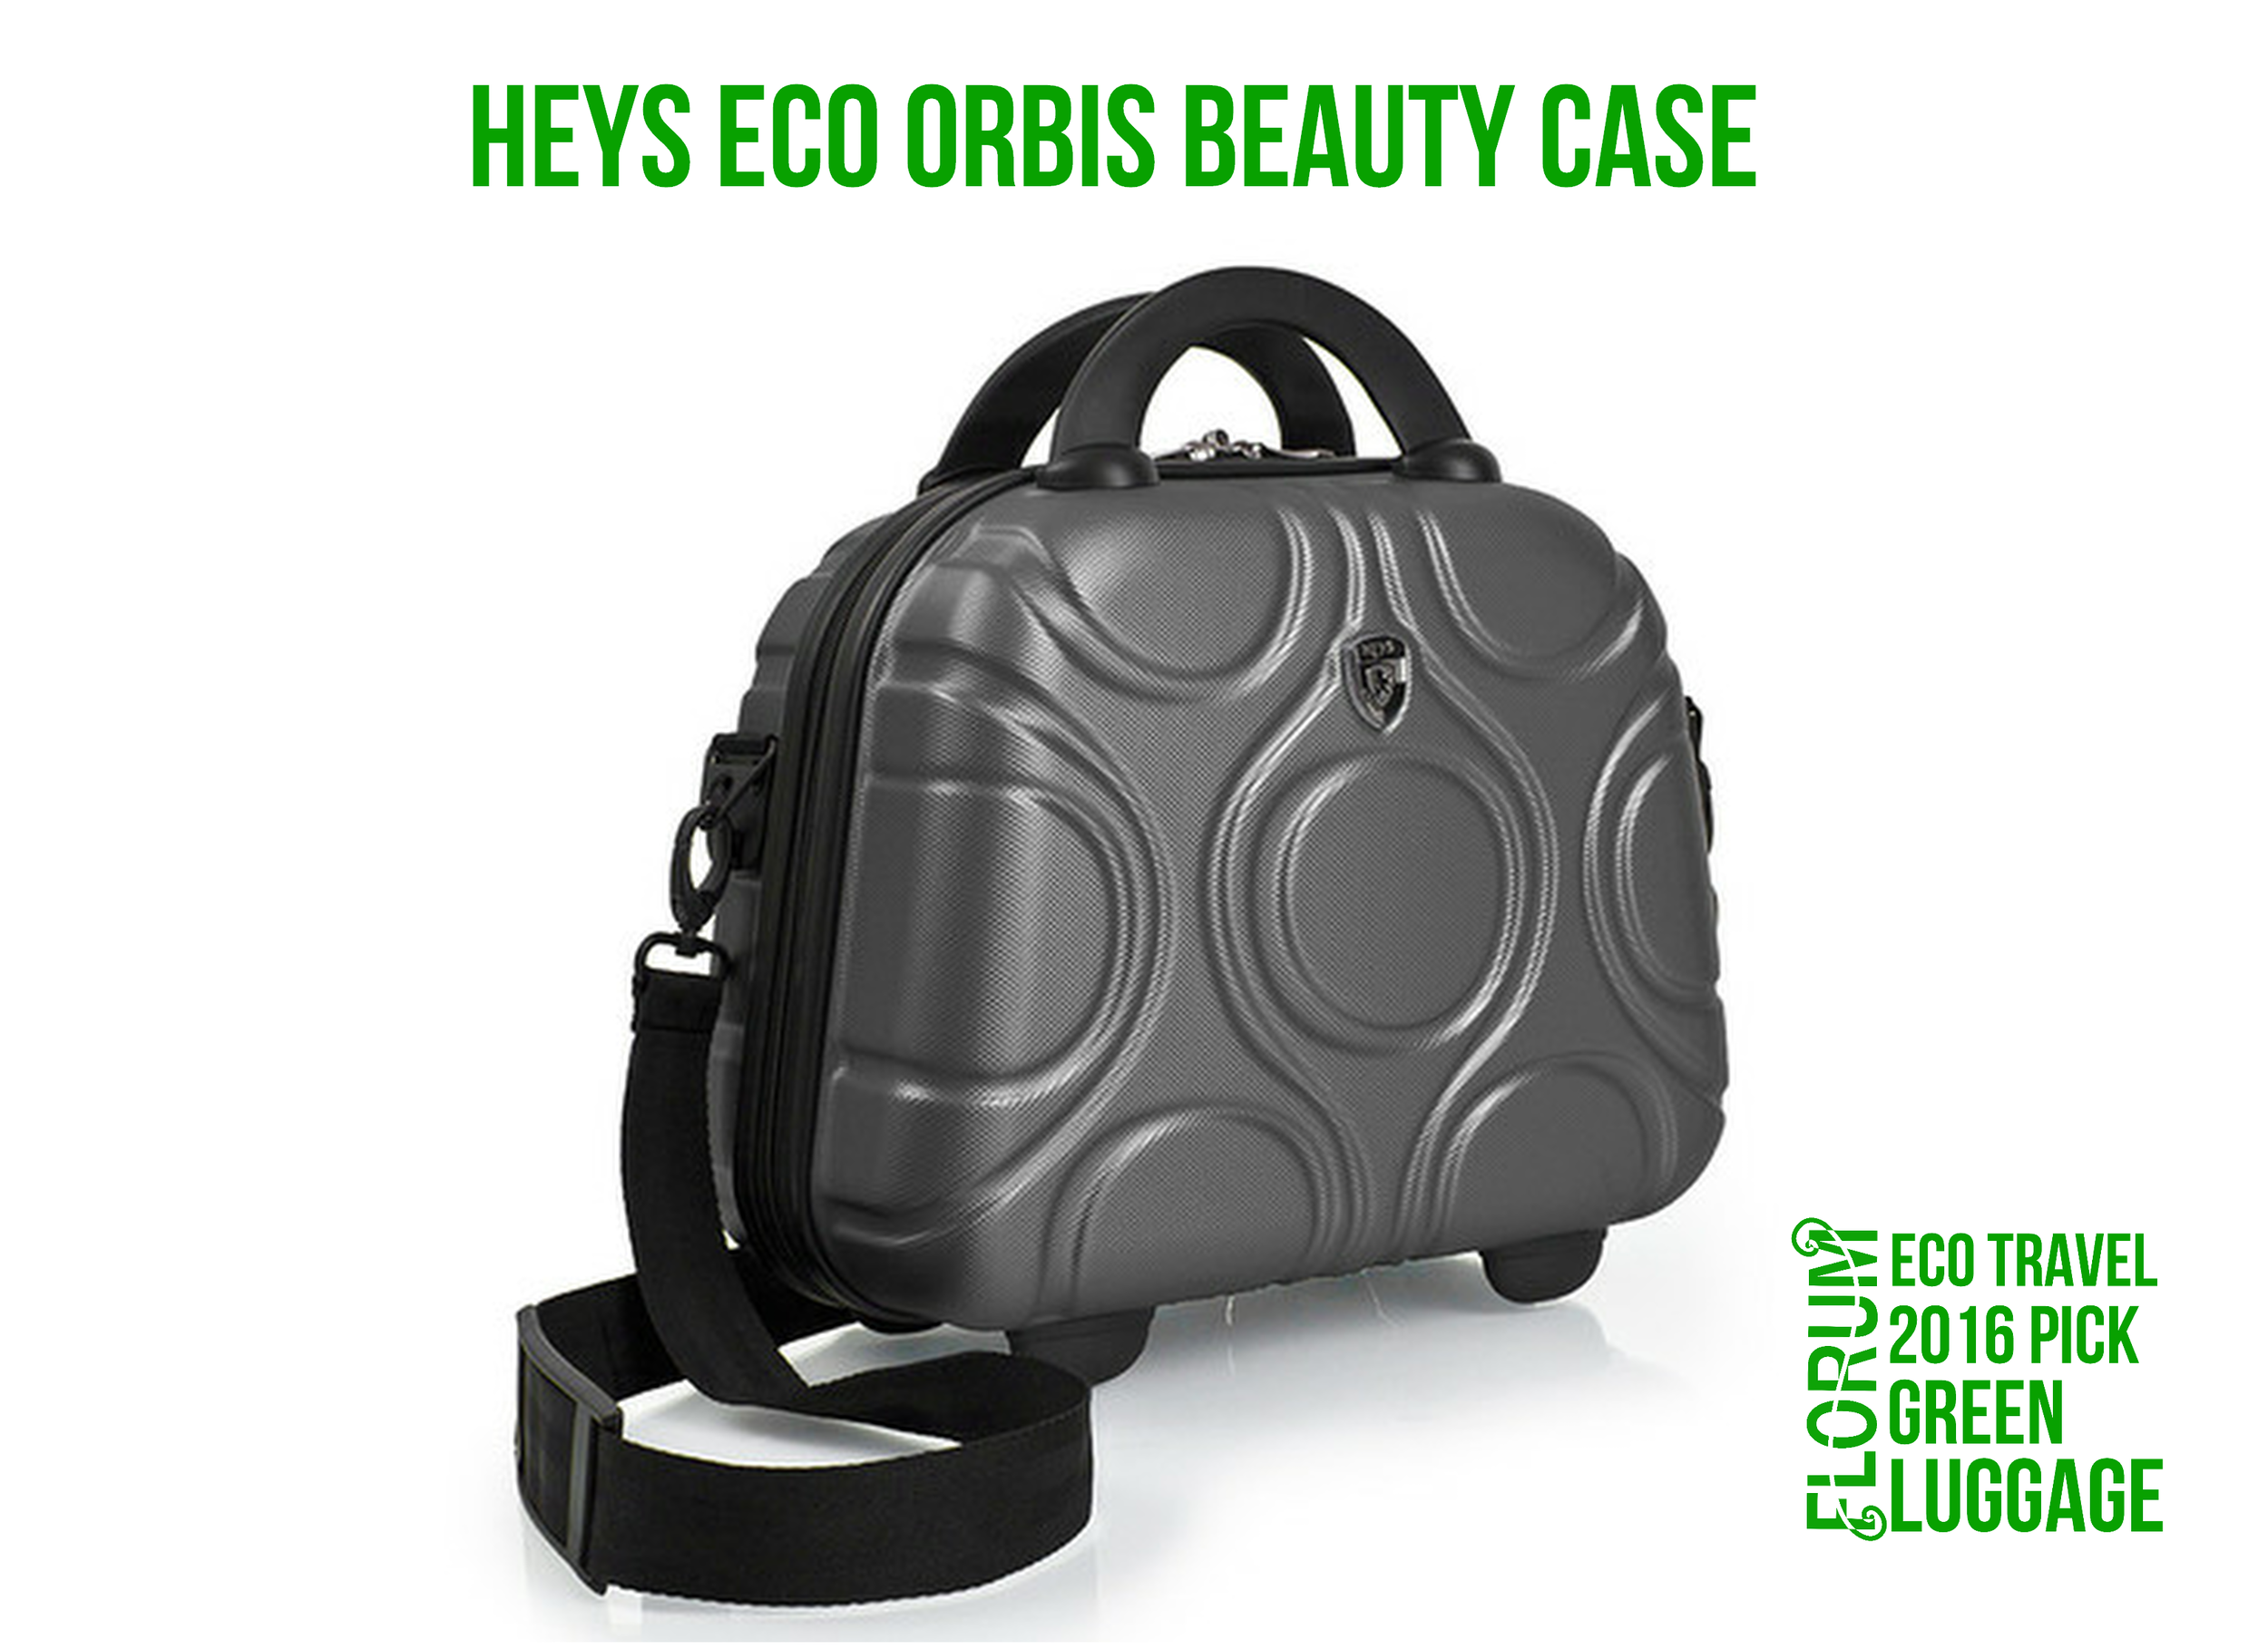 Florum Eco Travel 2016 Green Luggage Pick - Hey Eco Orbis Beauty Case - Noelle Lynne